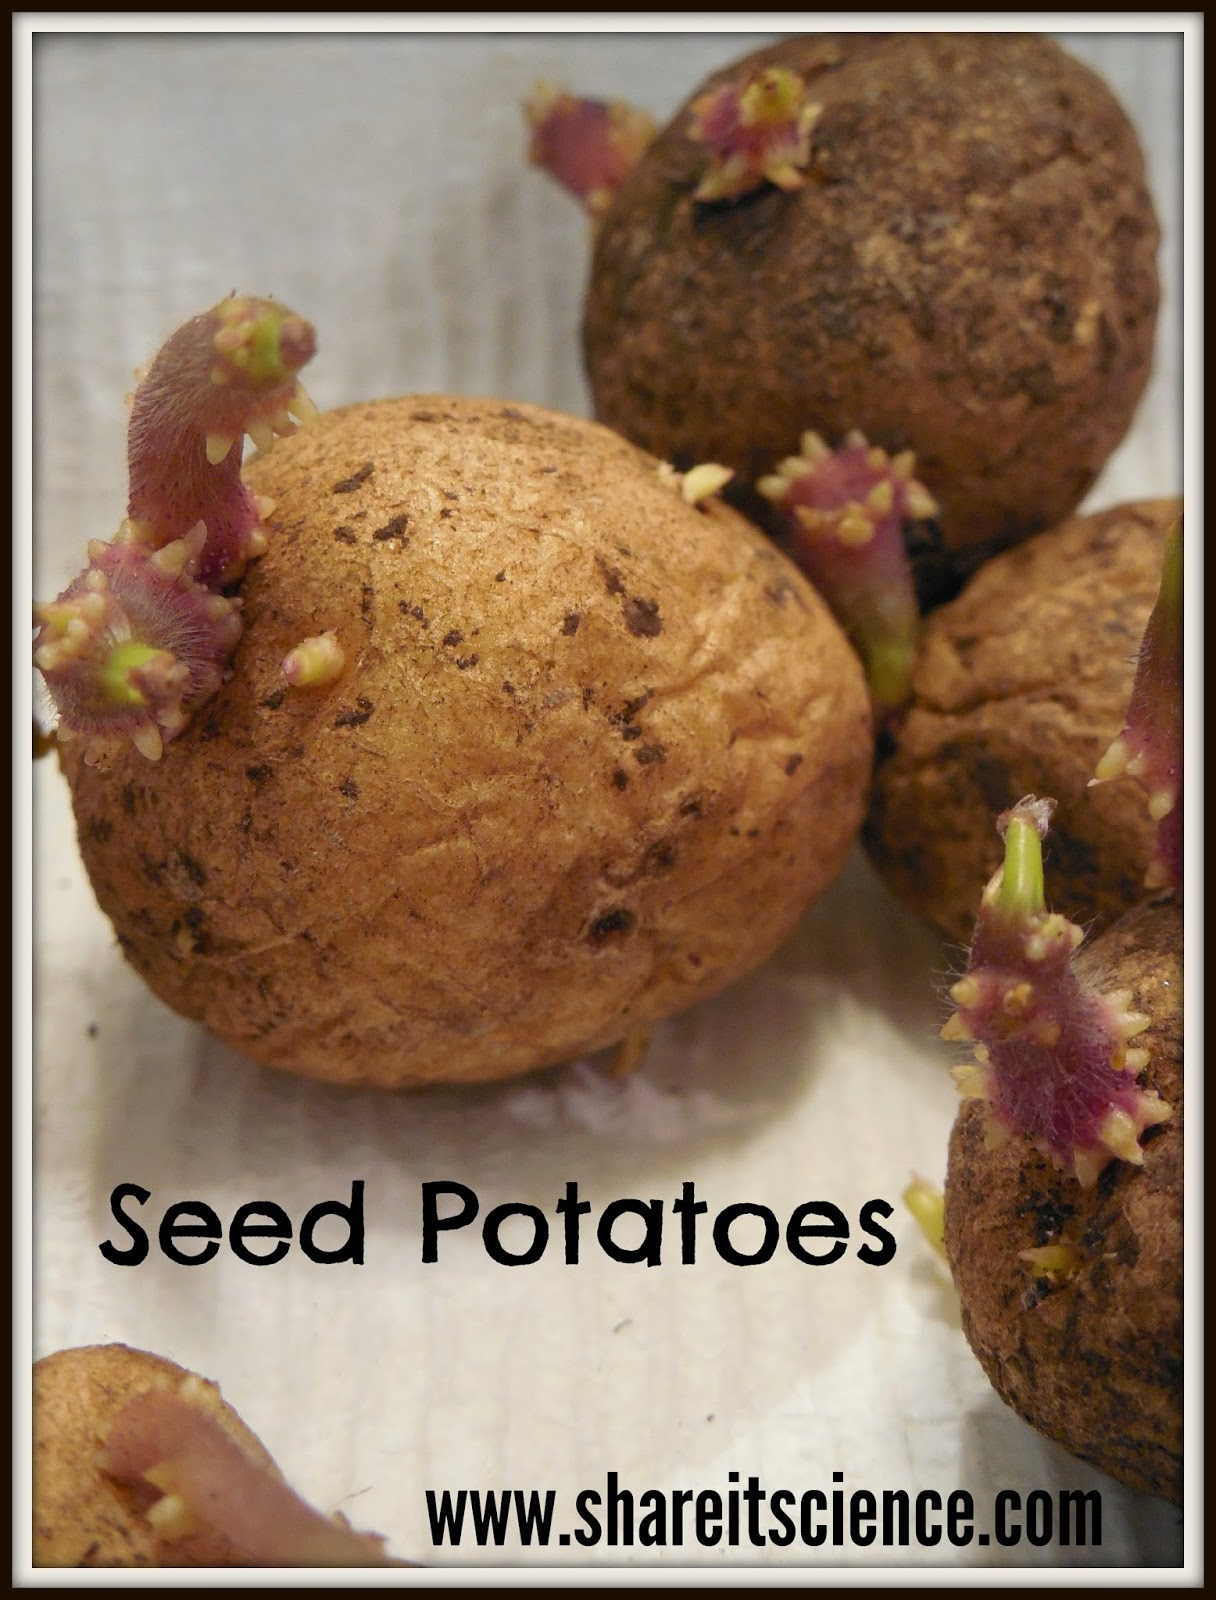 Share it! Science : Glimpse of the Garden: Week 7, Seed Potatoes